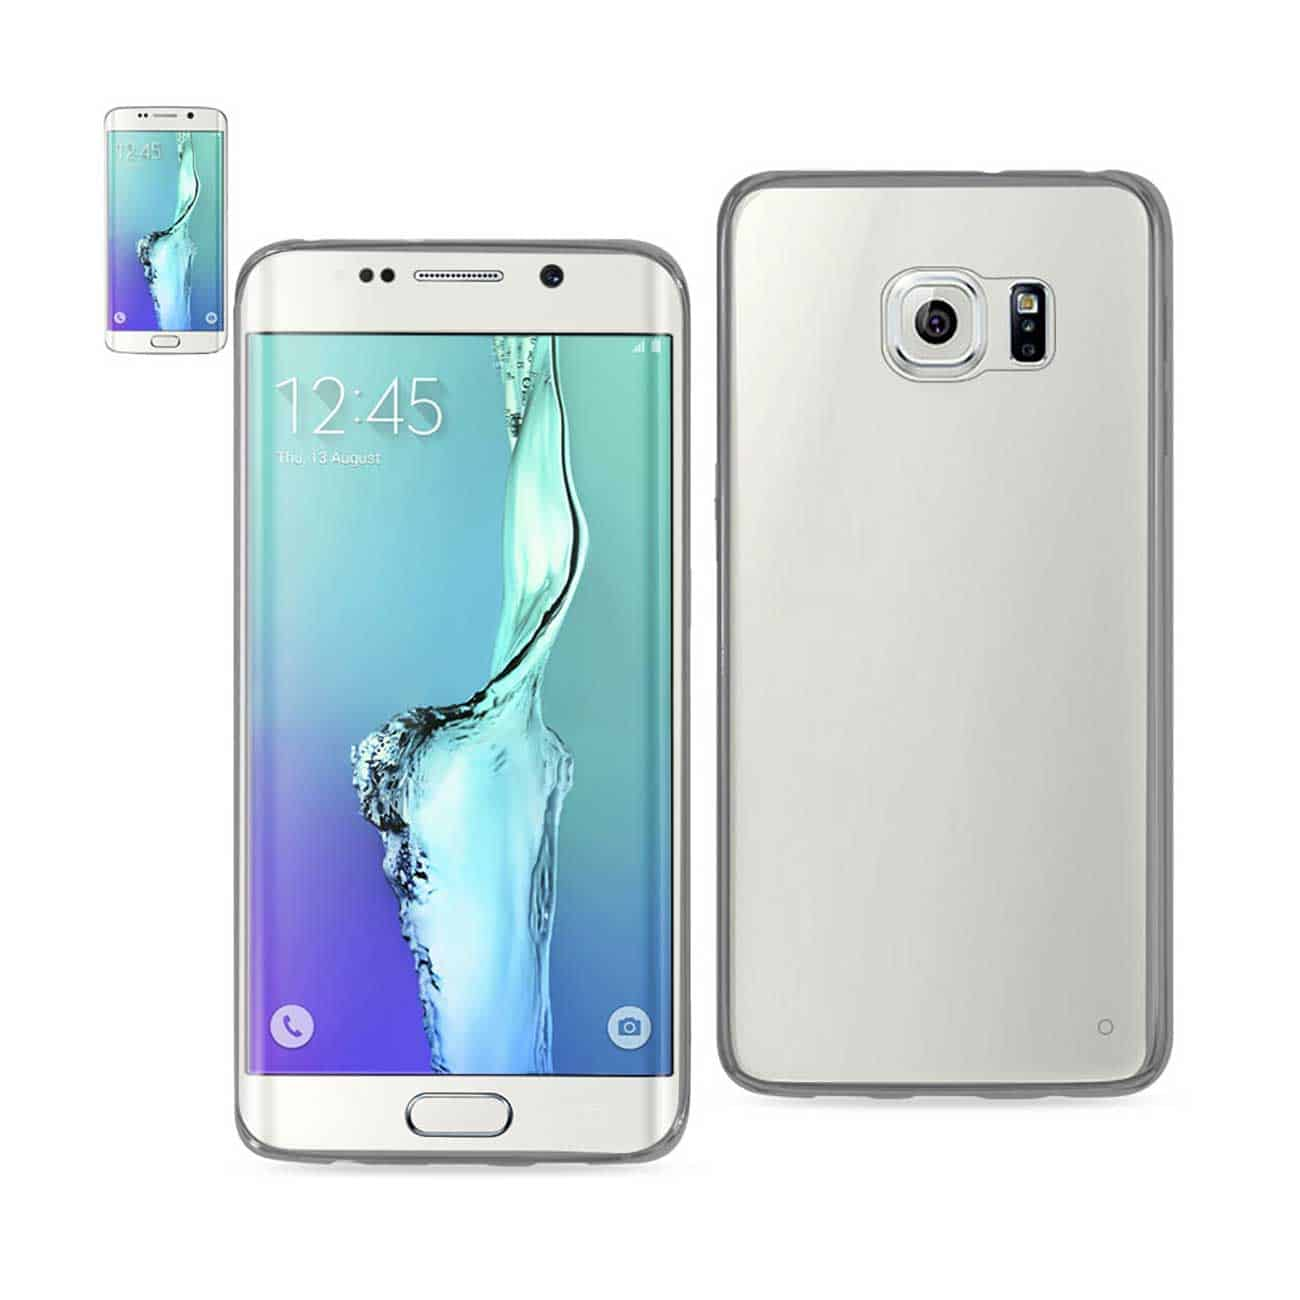 SAMSUNG GALAXY S6 EDGE PLUS CLEAR BACK FRAME BUMPER CASE IN GRAY